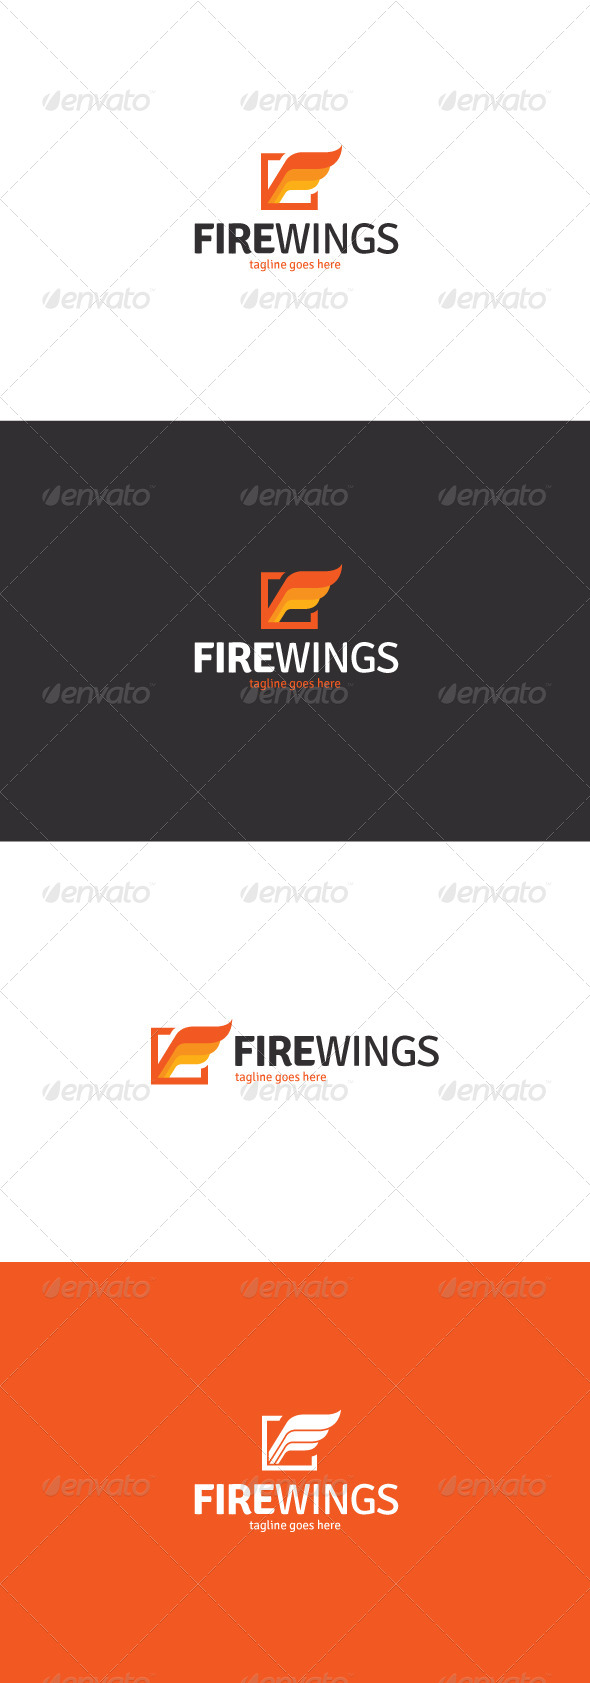 Fire Wings Logo